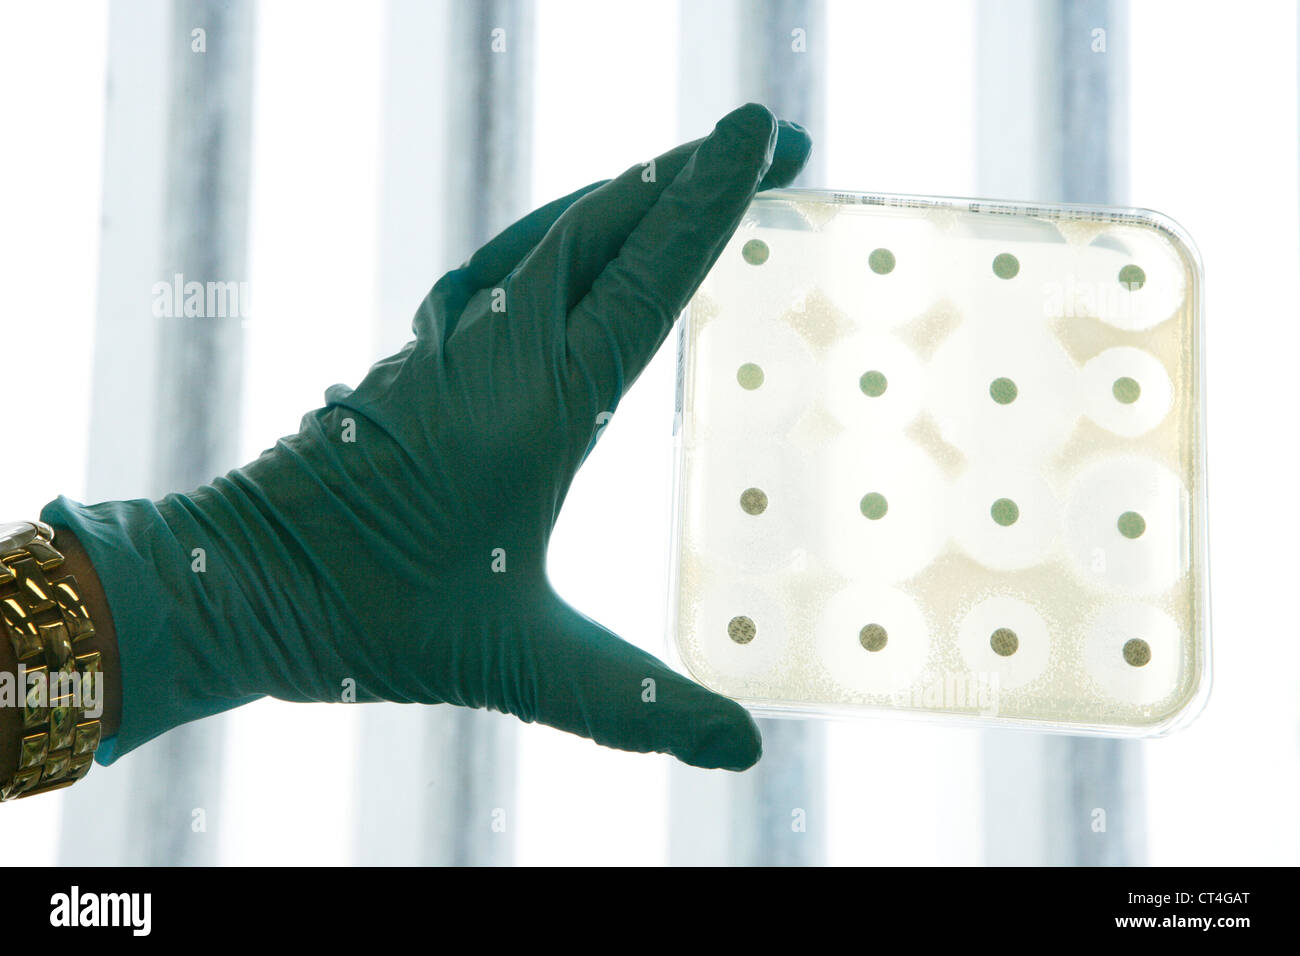 ANTIMICROB. SUSCEPTIBILITY TEST - Stock Image